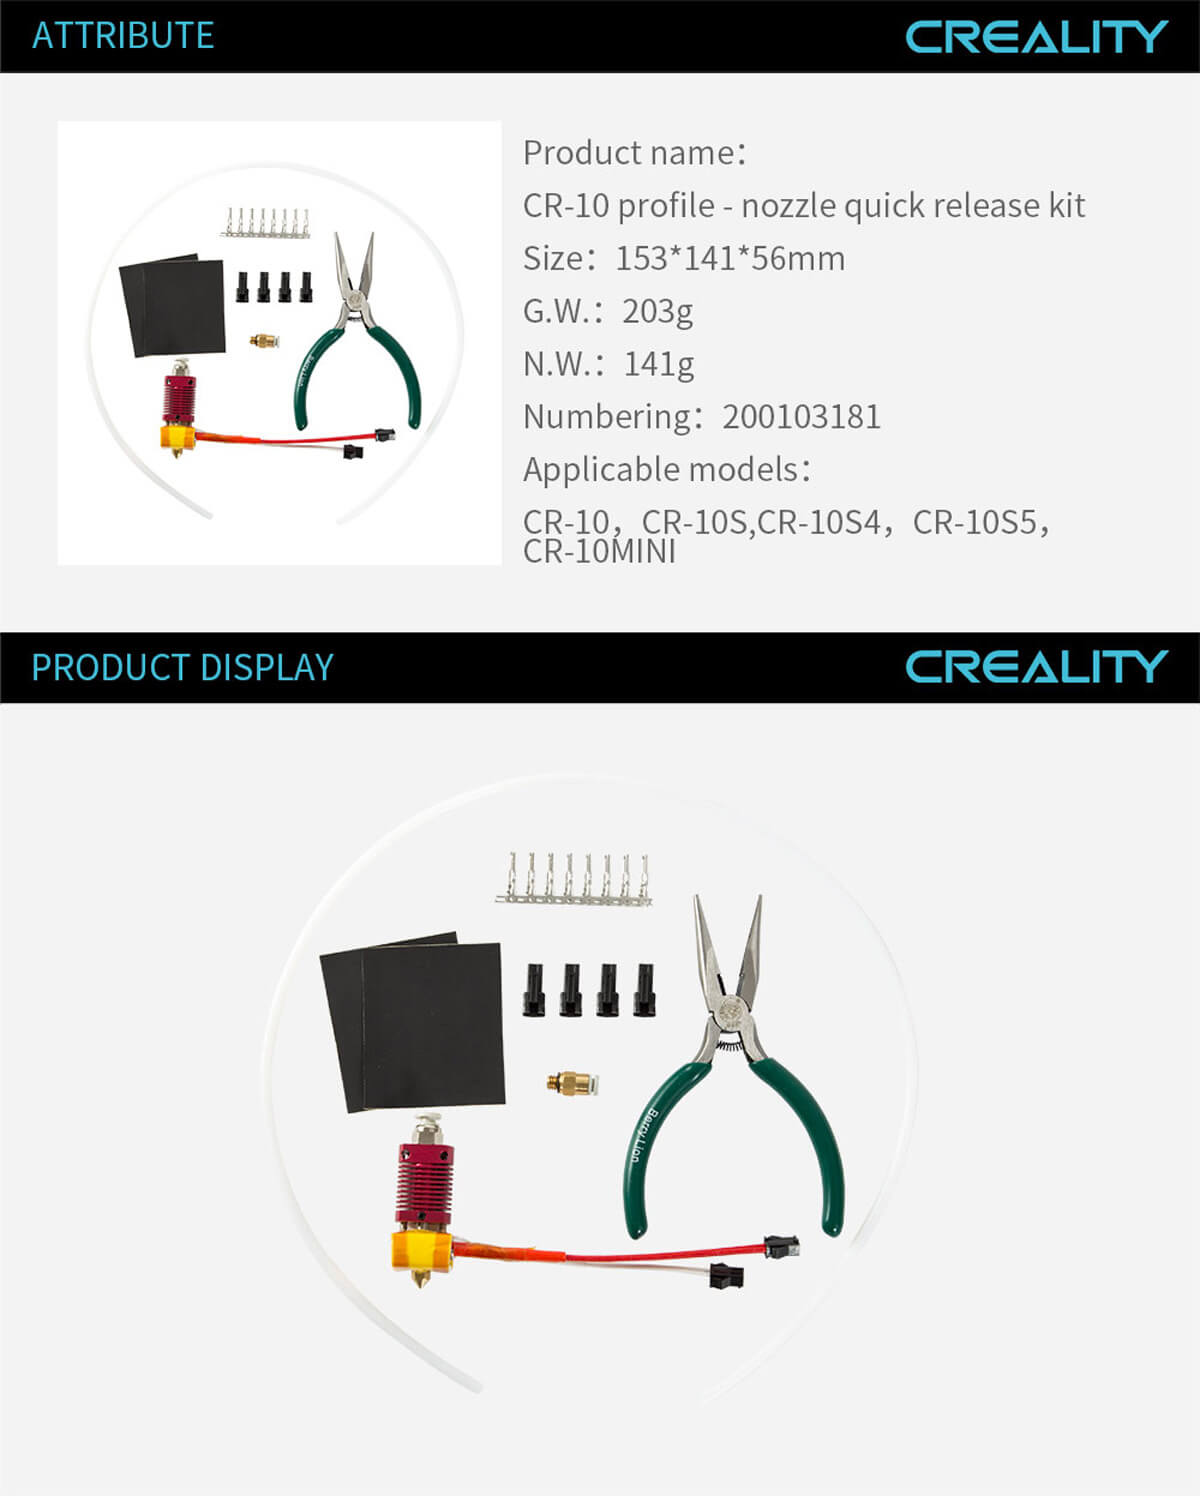 creality-3d-printer-CR-10-Profile-Nozzle-Quick-Release-Kit-11